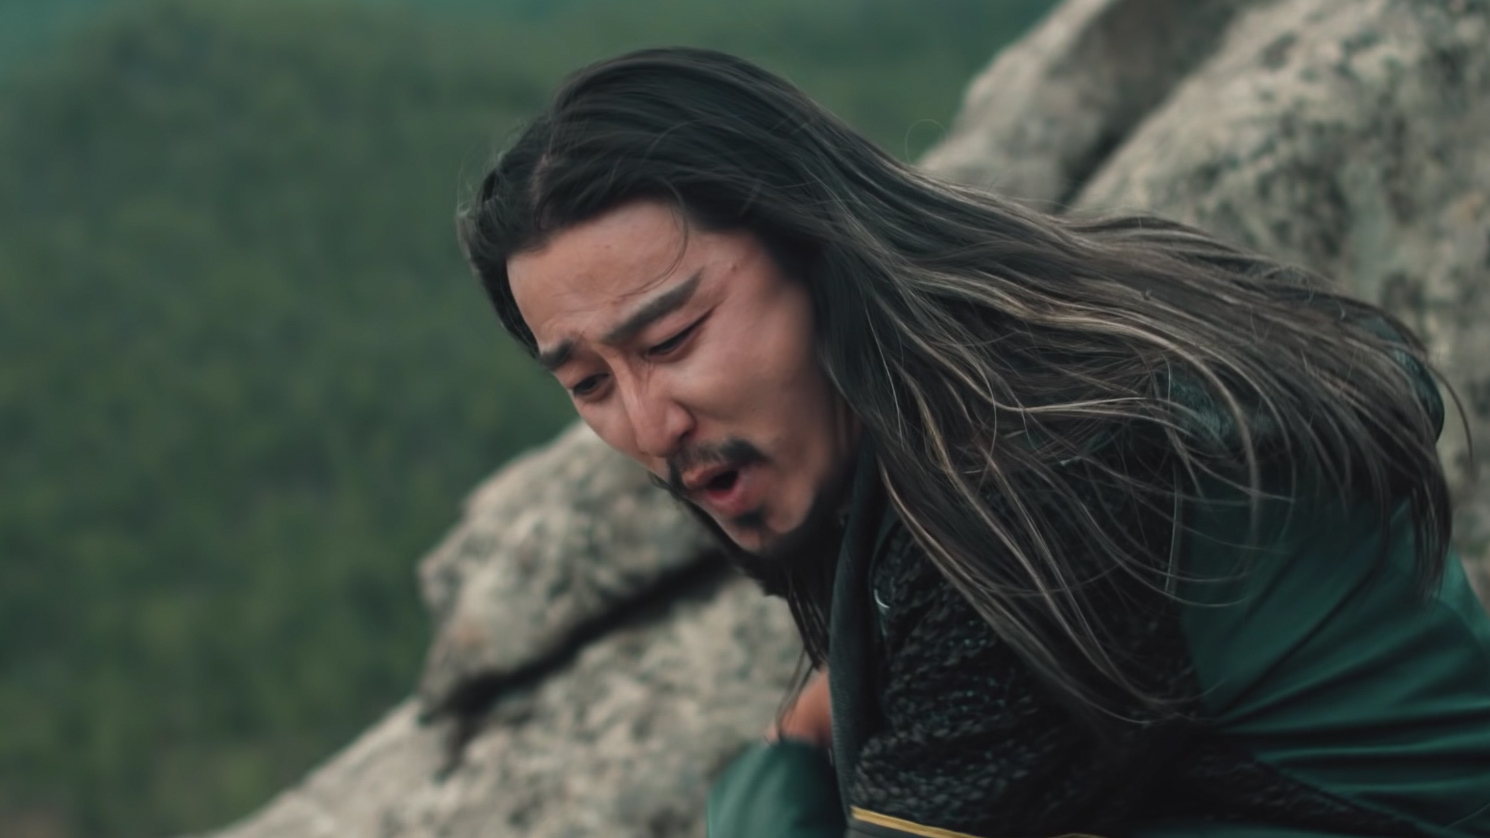 Mongolian Heavy Metal Band Gets Millions Of Youtube Views Goats And Soda Npr